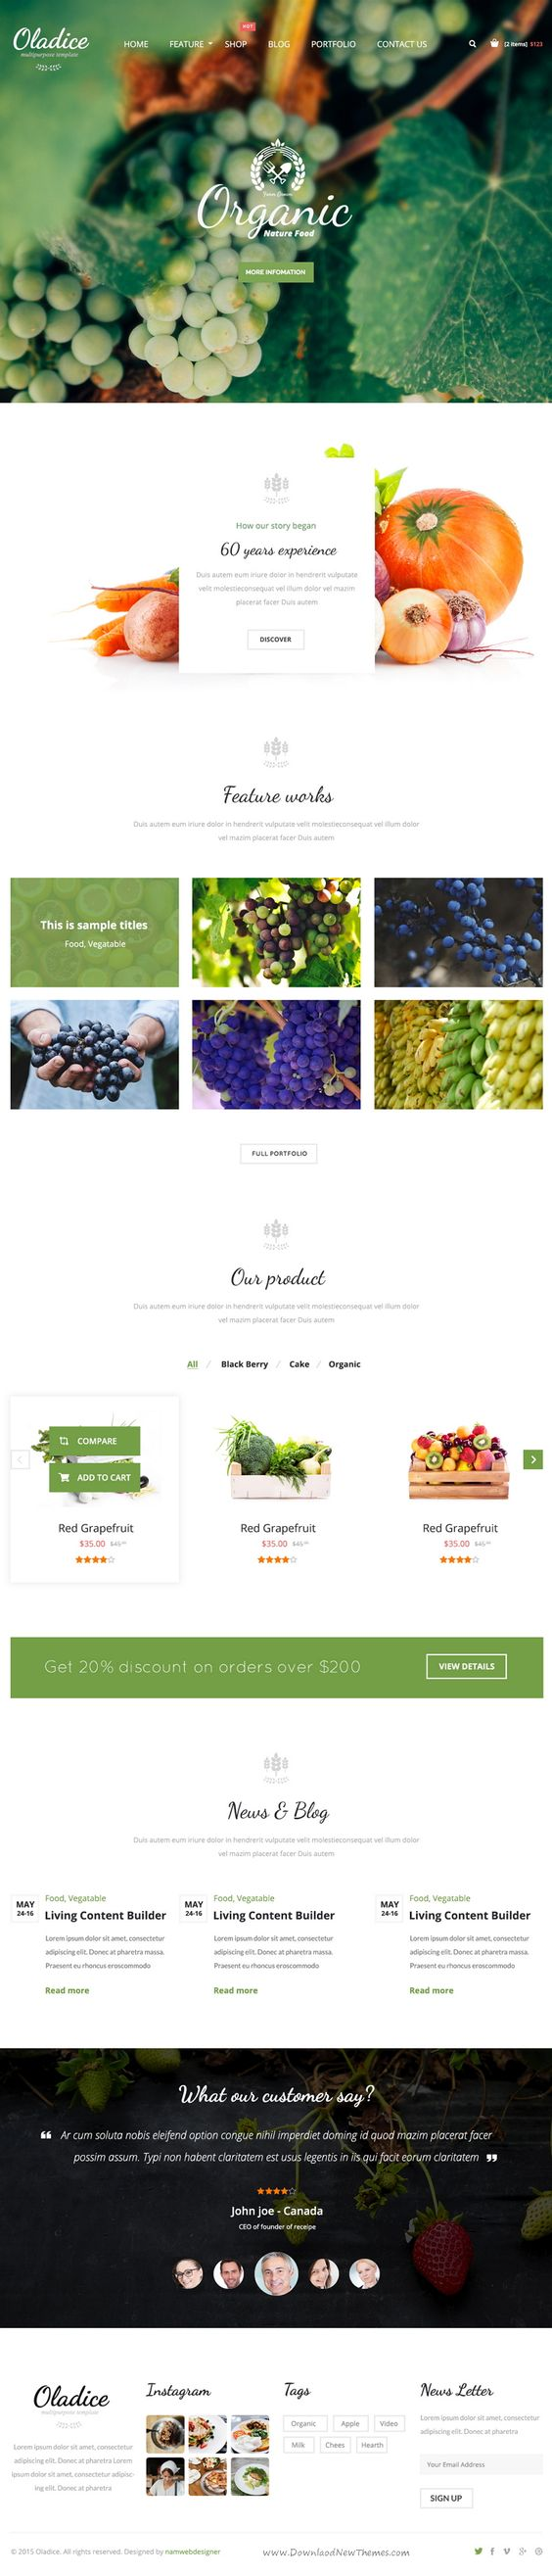 Oladice is clean and elegant design PSD Template for Organic Farms website. Download Now➯ http://themeforest.net/item/oladice-organic-farm-psd-template/15873027?ref=Datasata